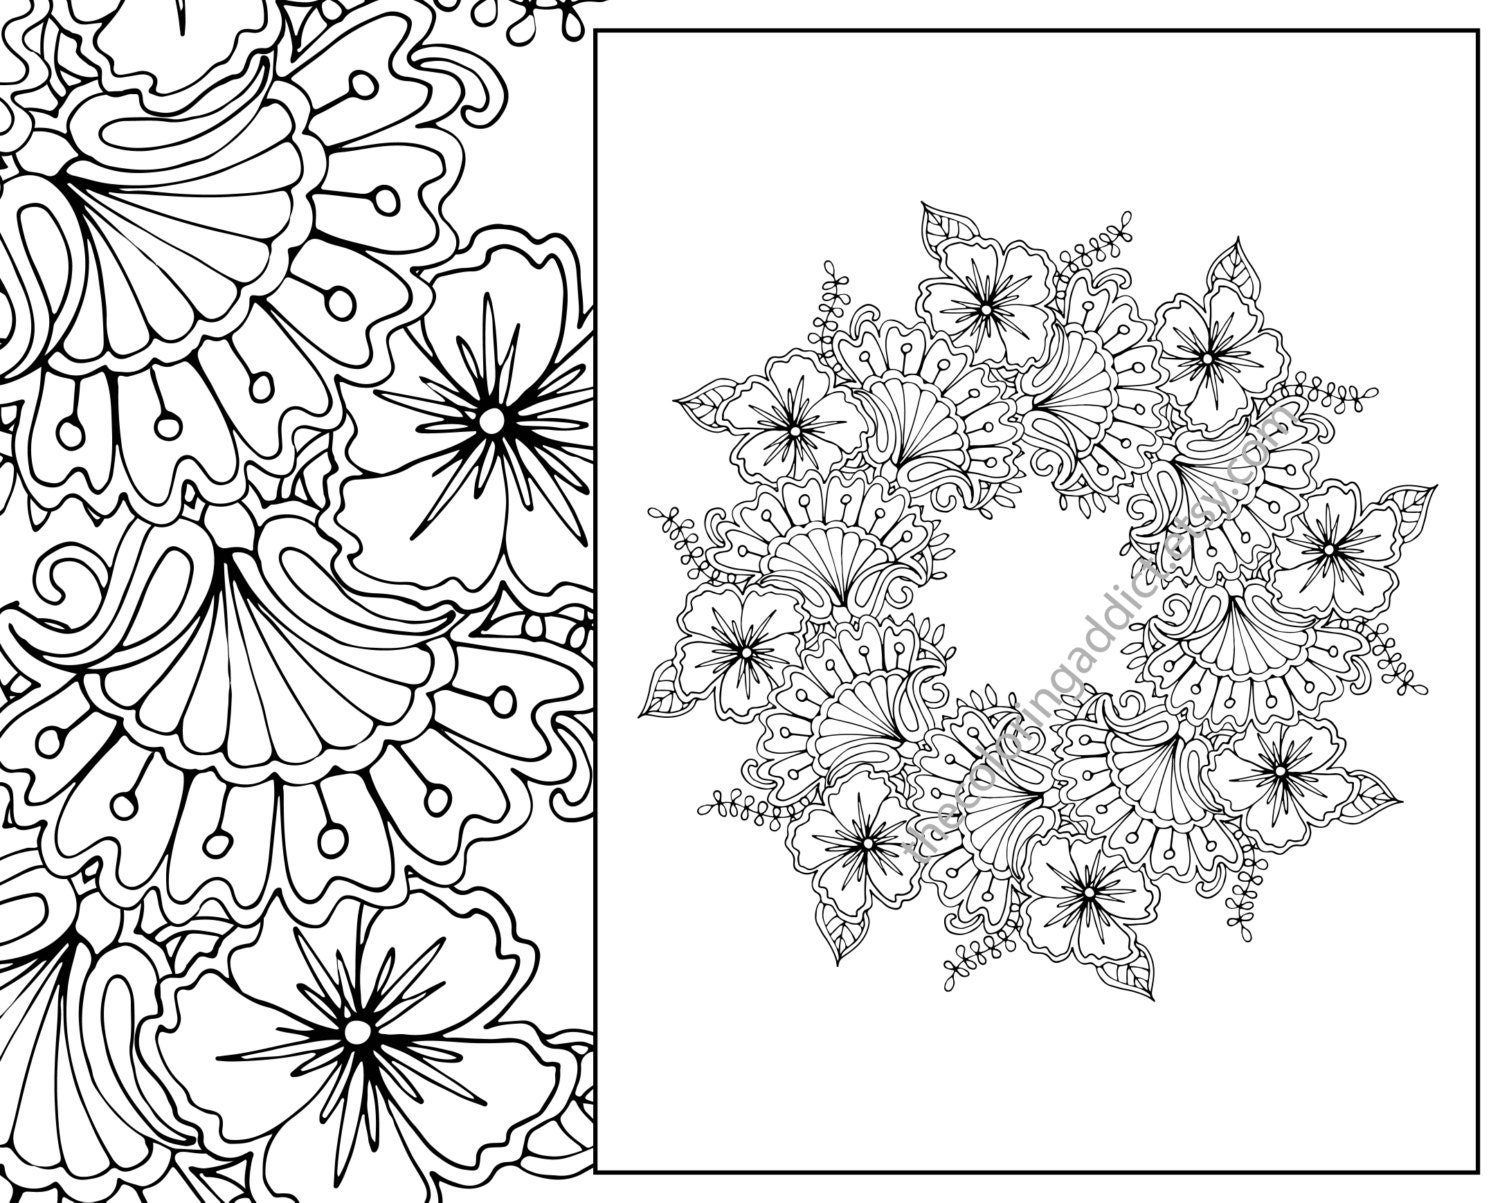 Floral Mandala Coloring Page Adult Digital